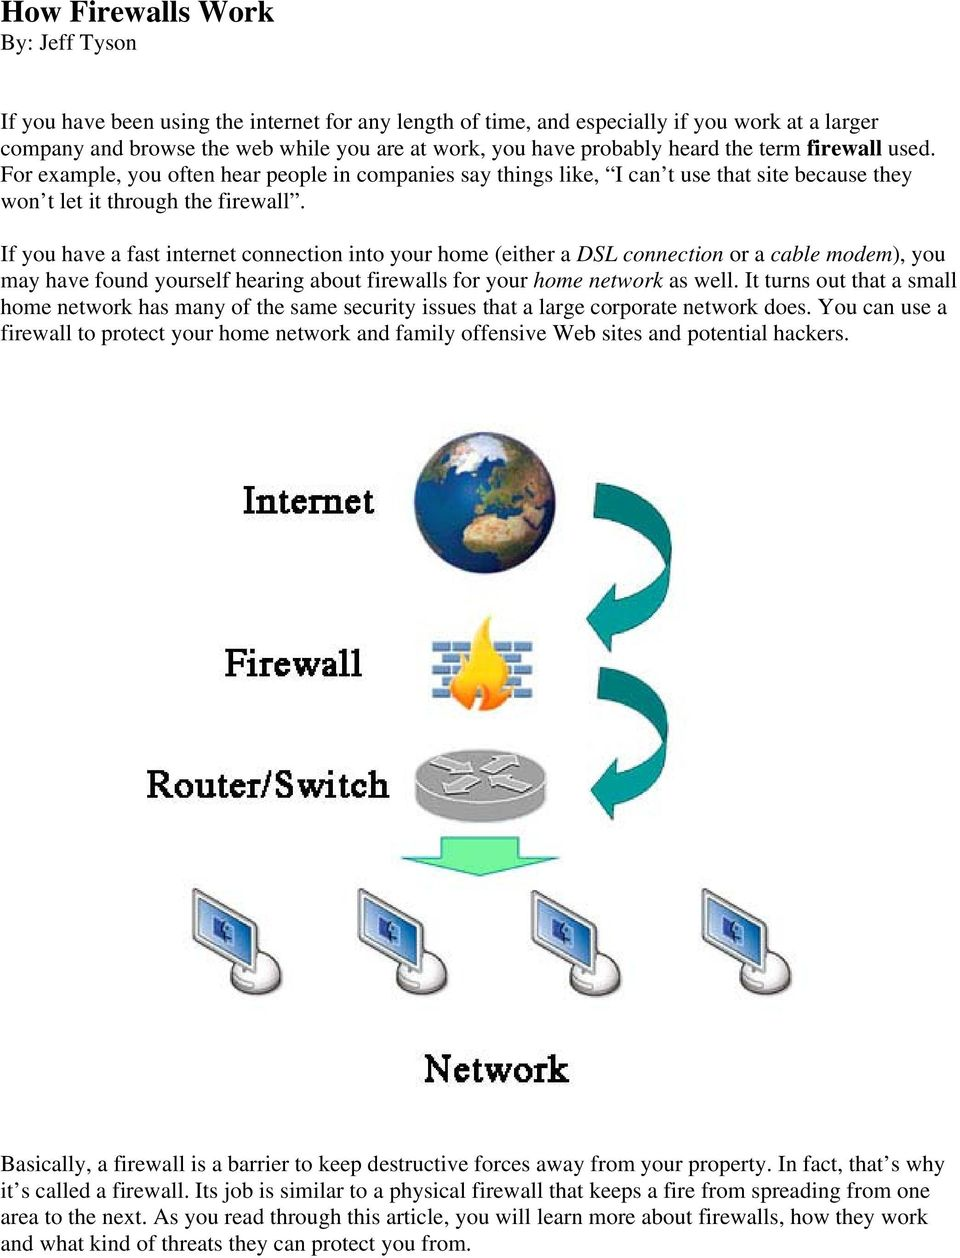 If you have a fast internet connection into your home (either a DSL connection or a cable modem), you may have found yourself hearing about firewalls for your home network as well.